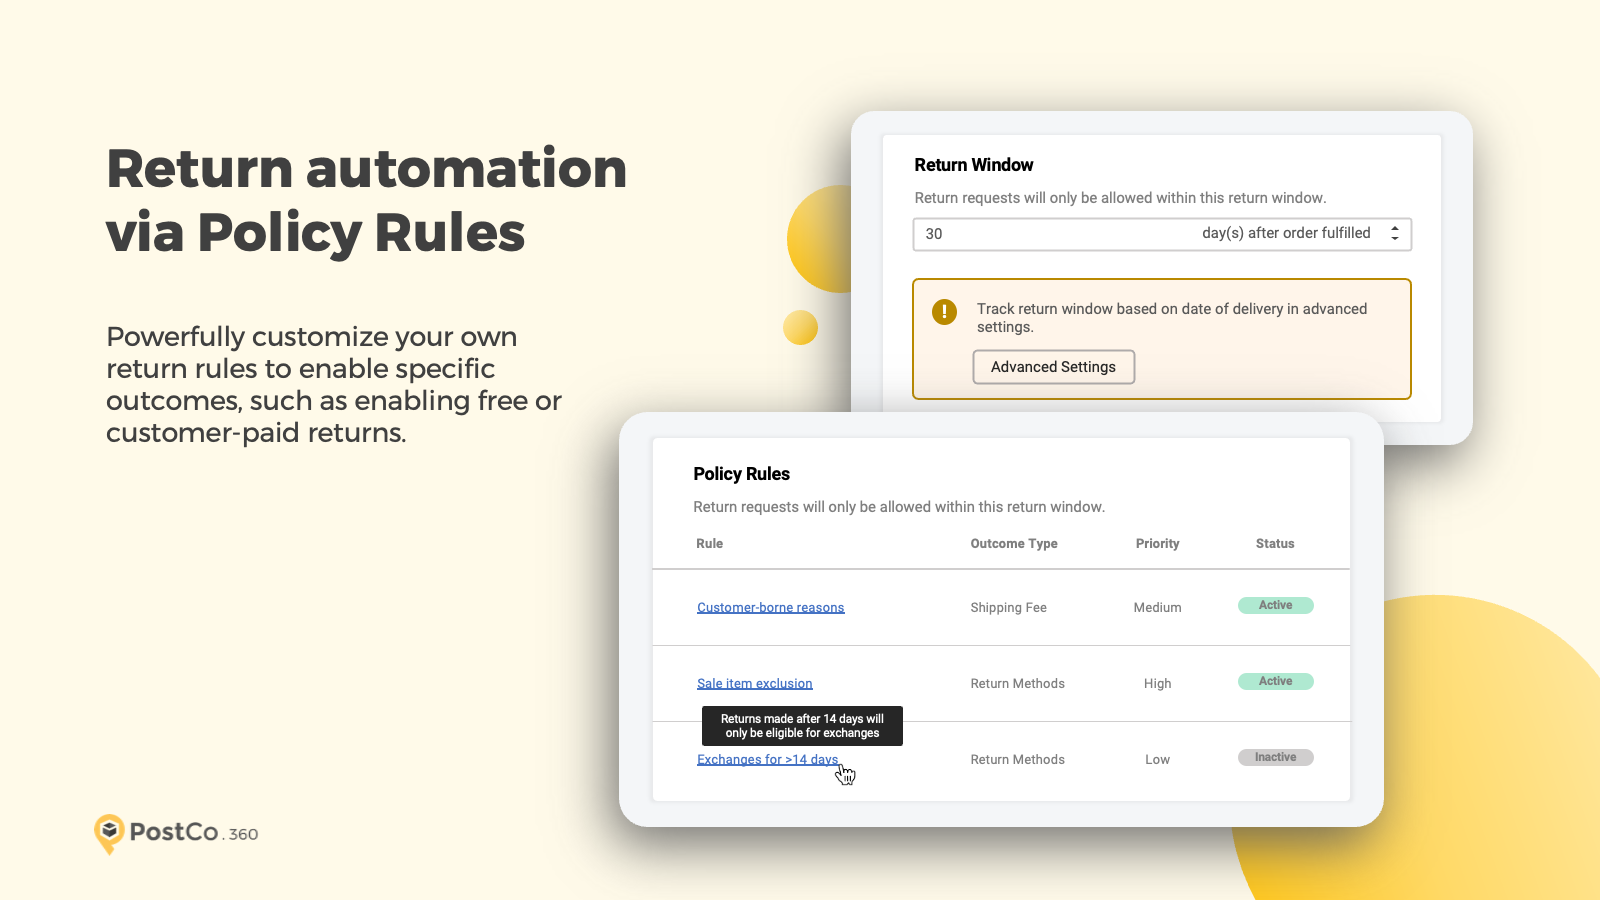 Return automation via Policy Rules